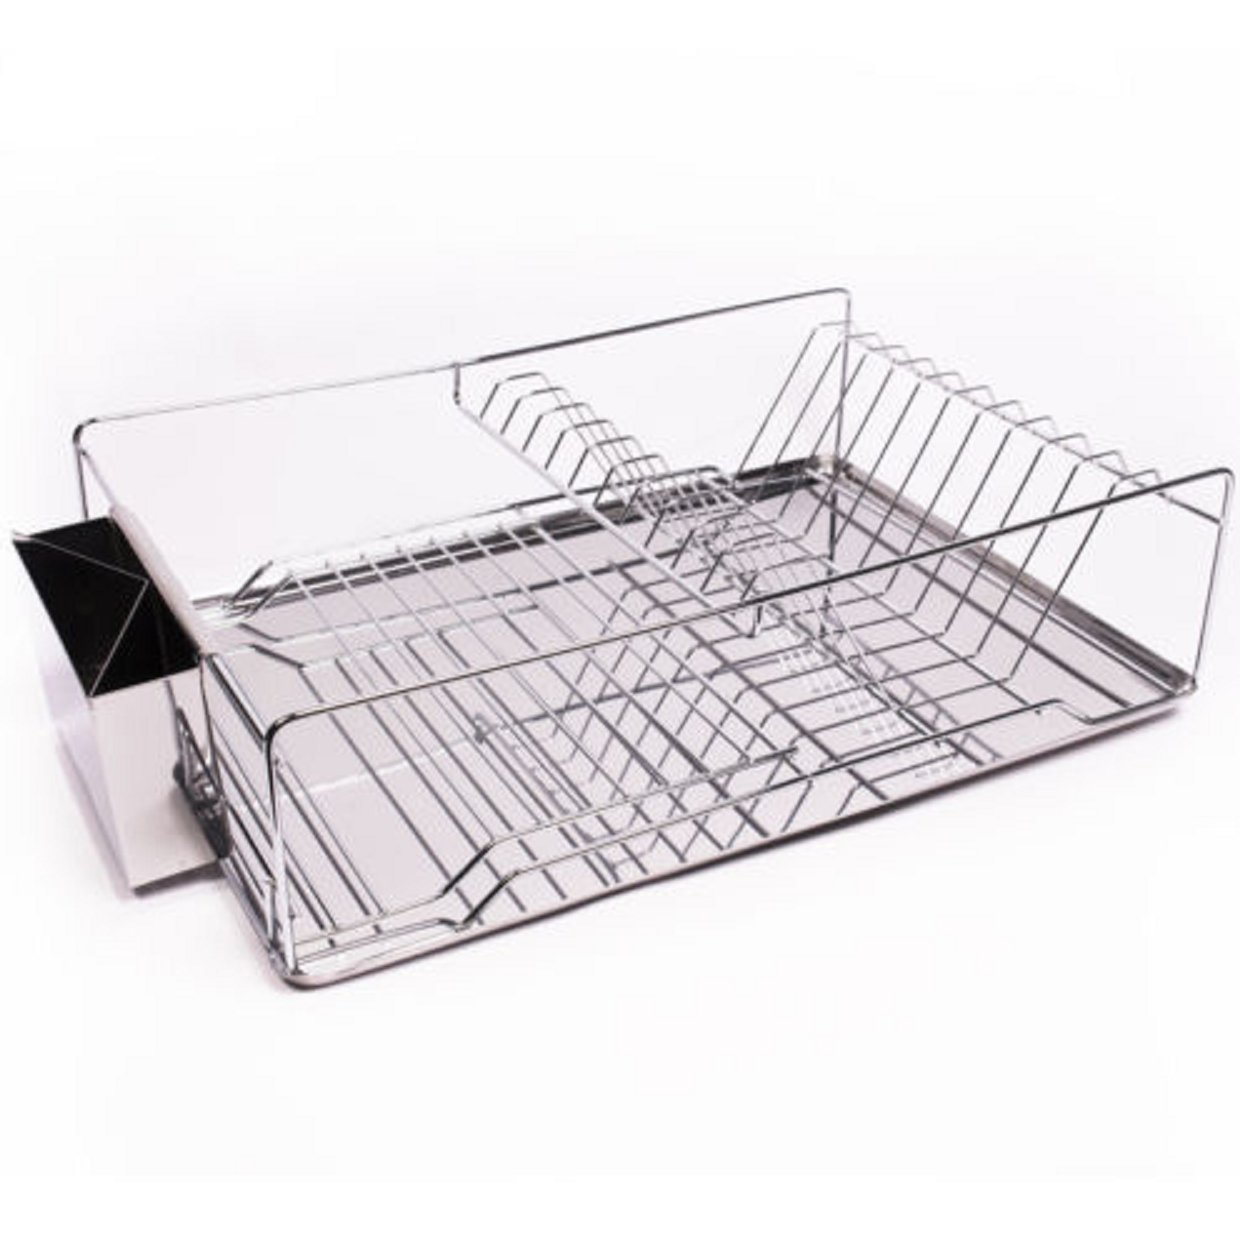 Cheap Dish Rack Drainer Tray, find Dish Rack Drainer Tray deals on ...